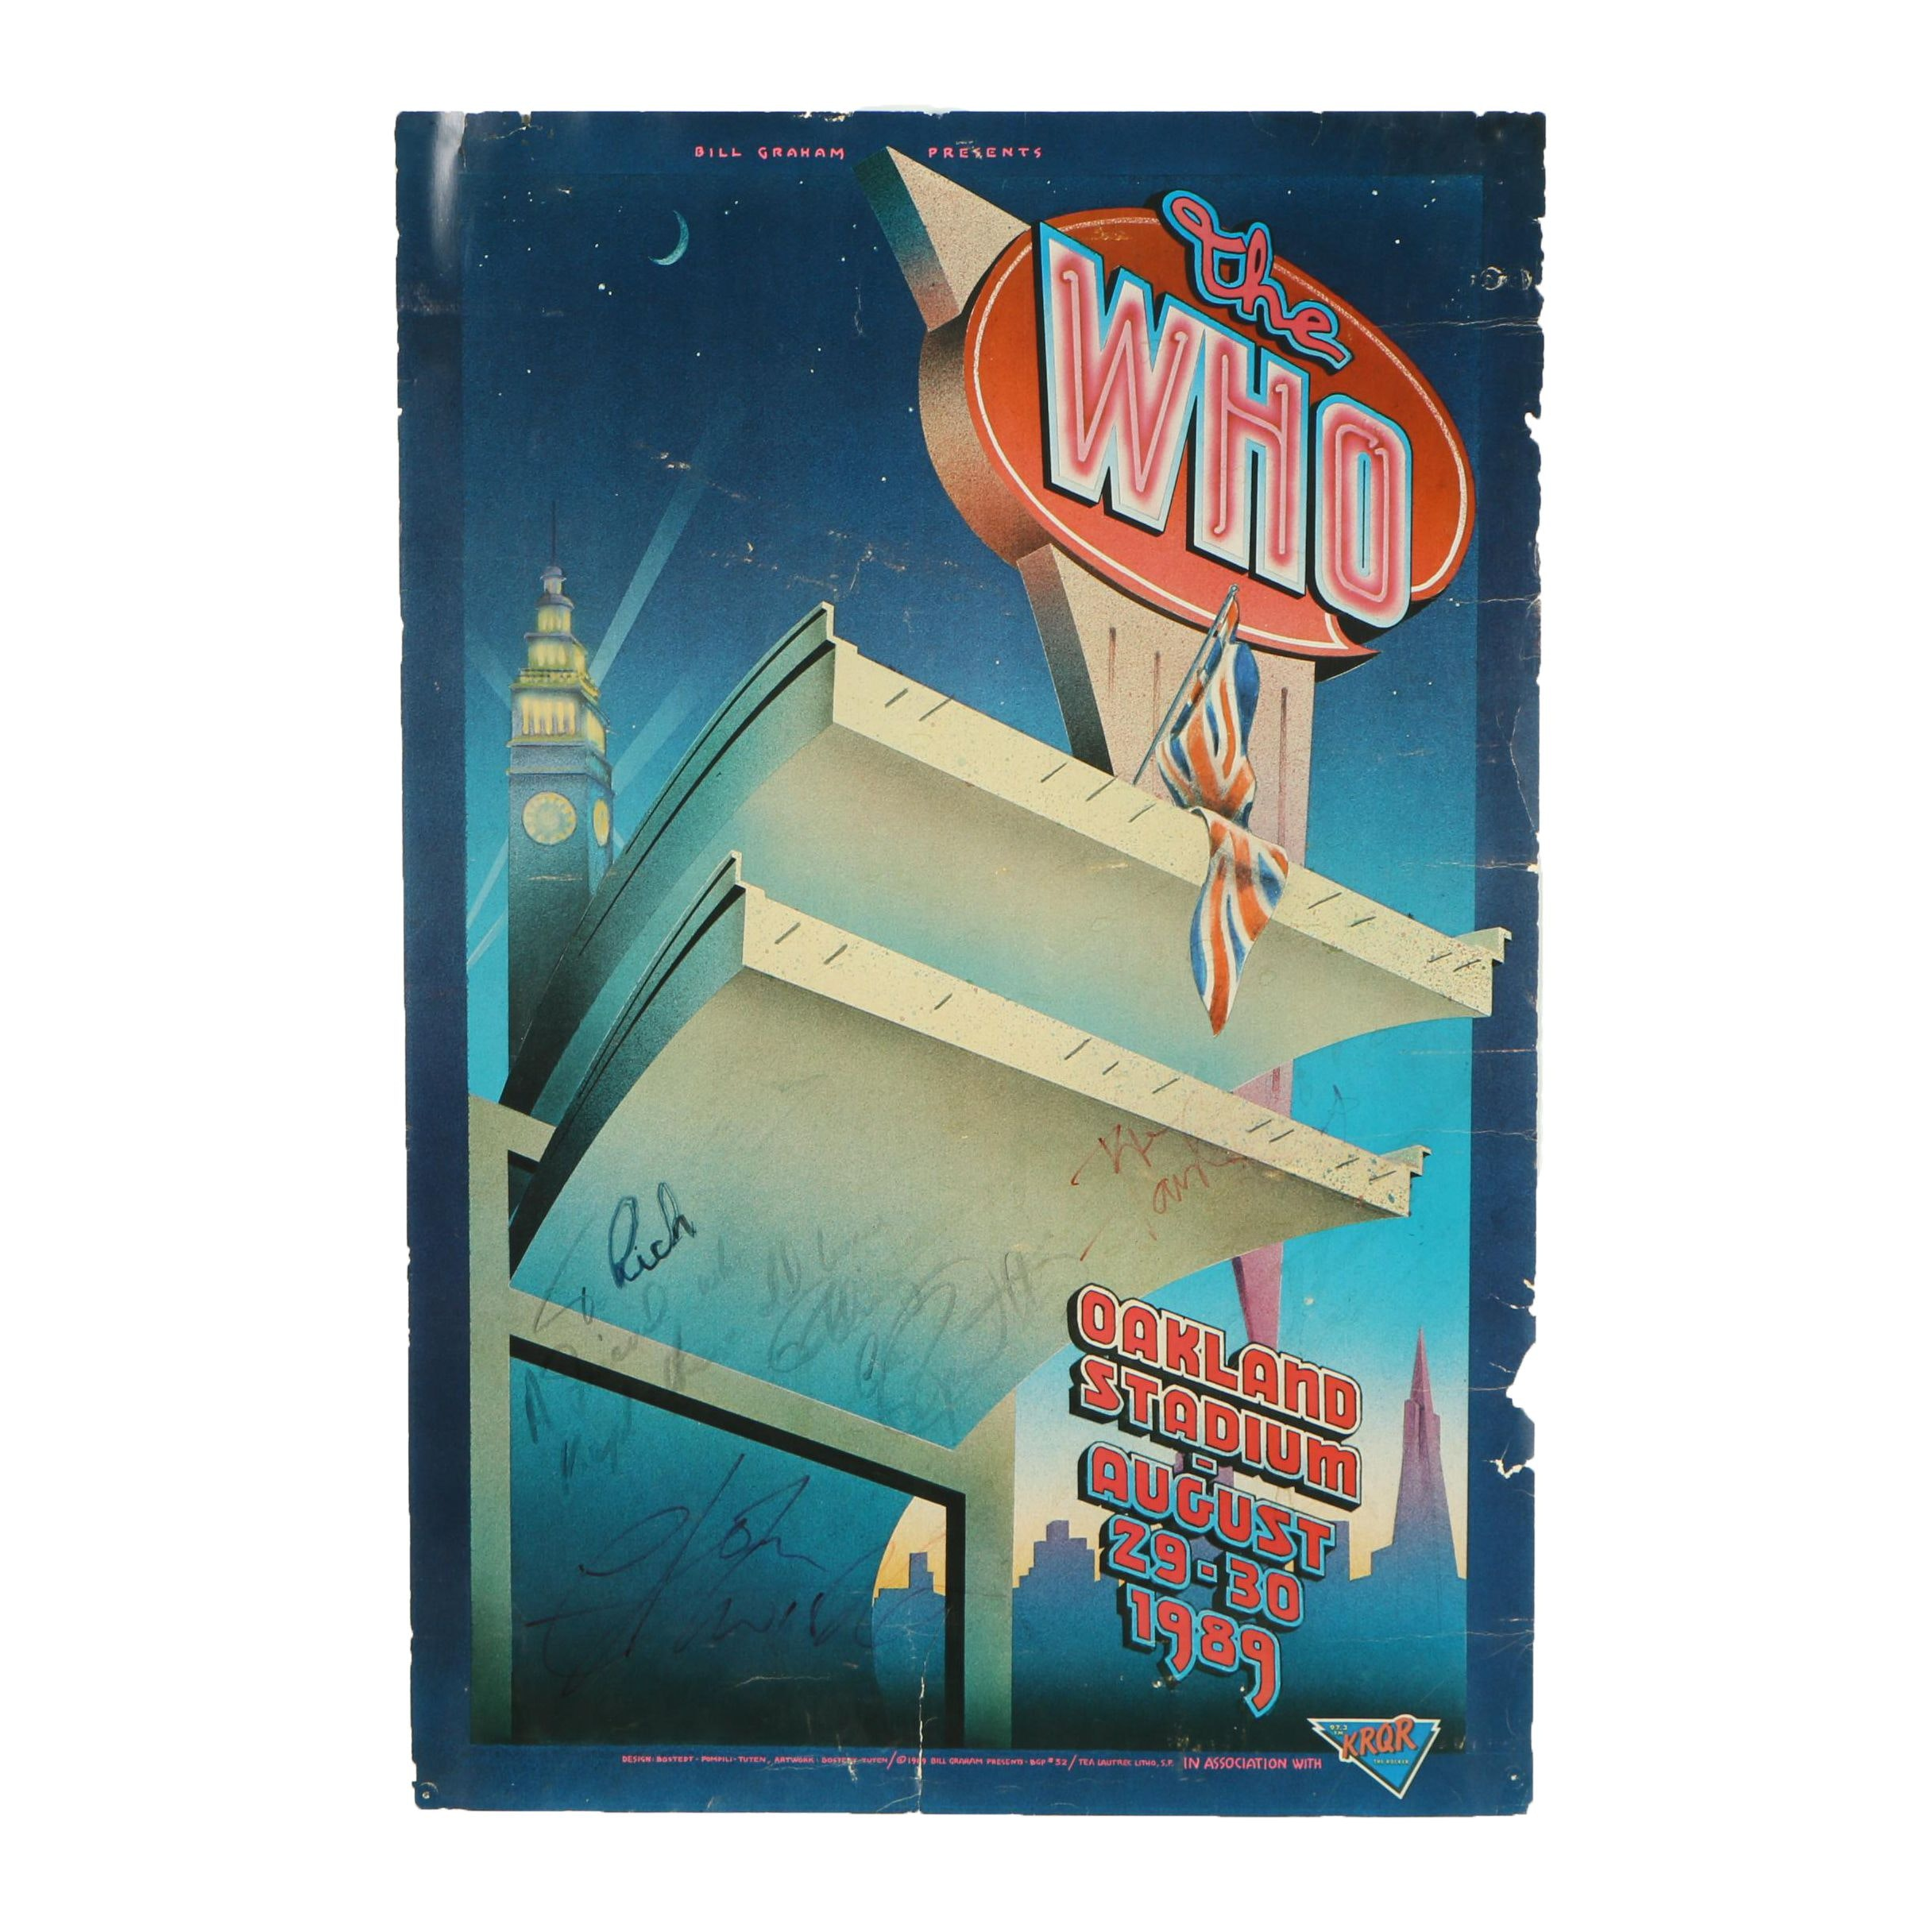 The Who Concert Poster After Randy Tuten and William Bostedt Signed by The Band